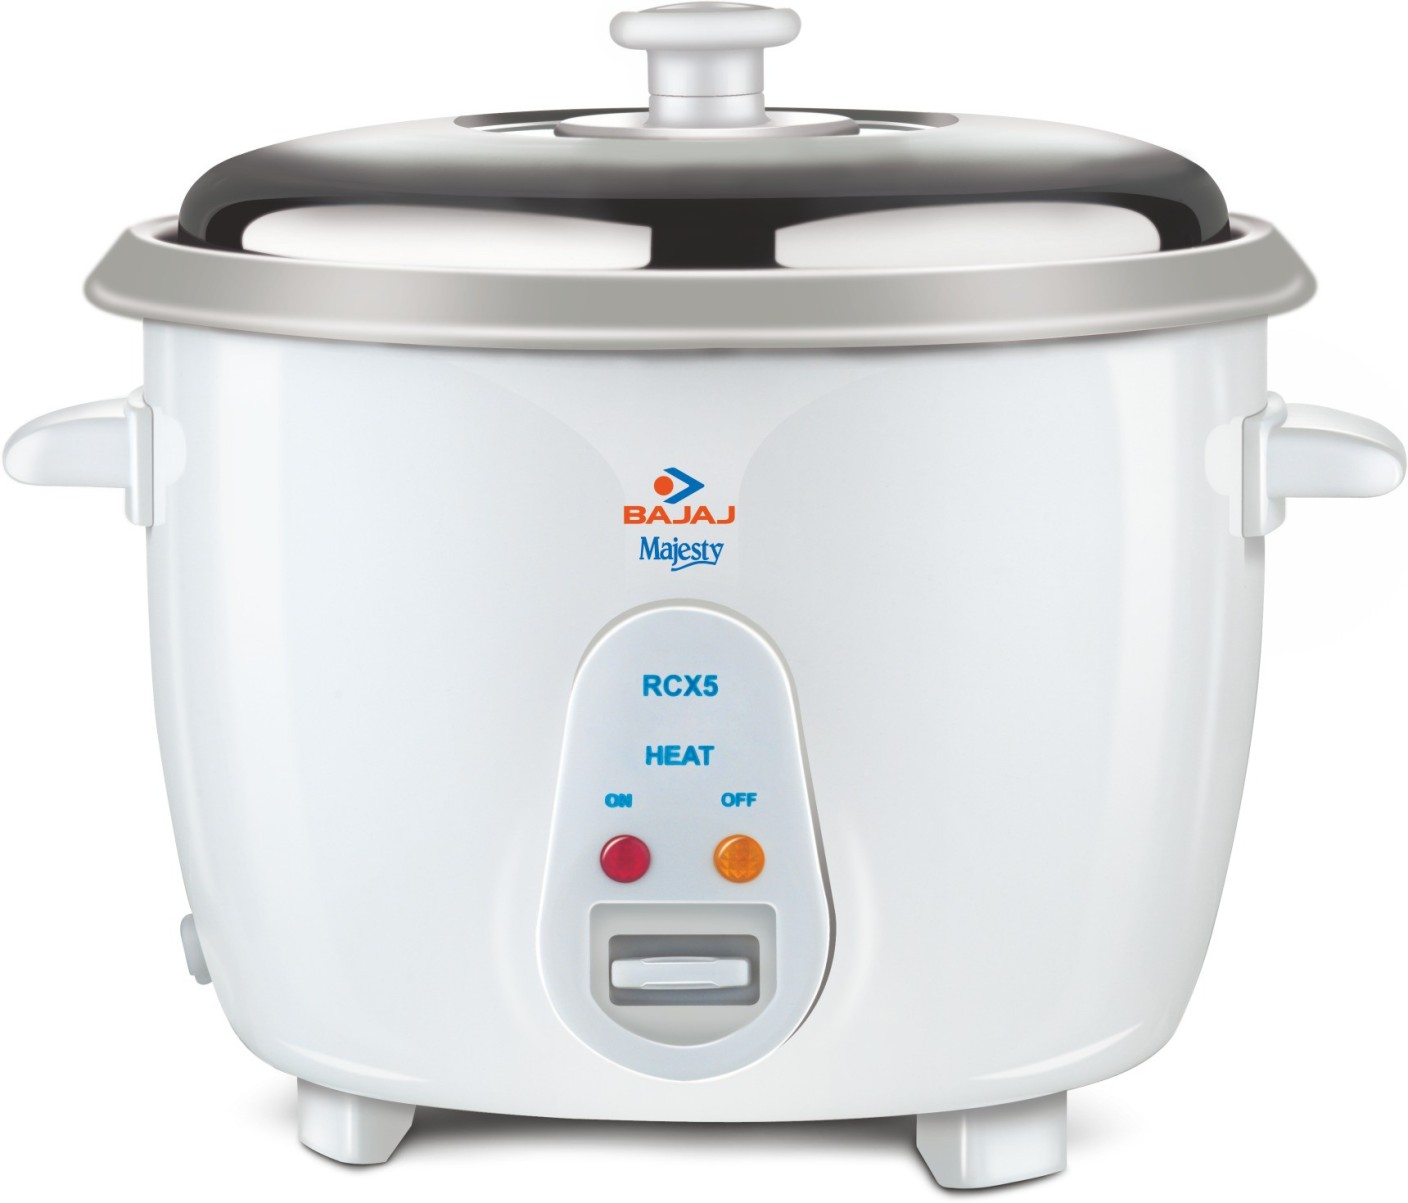 Bajaj electric rice cooker price in bangalore dating 8